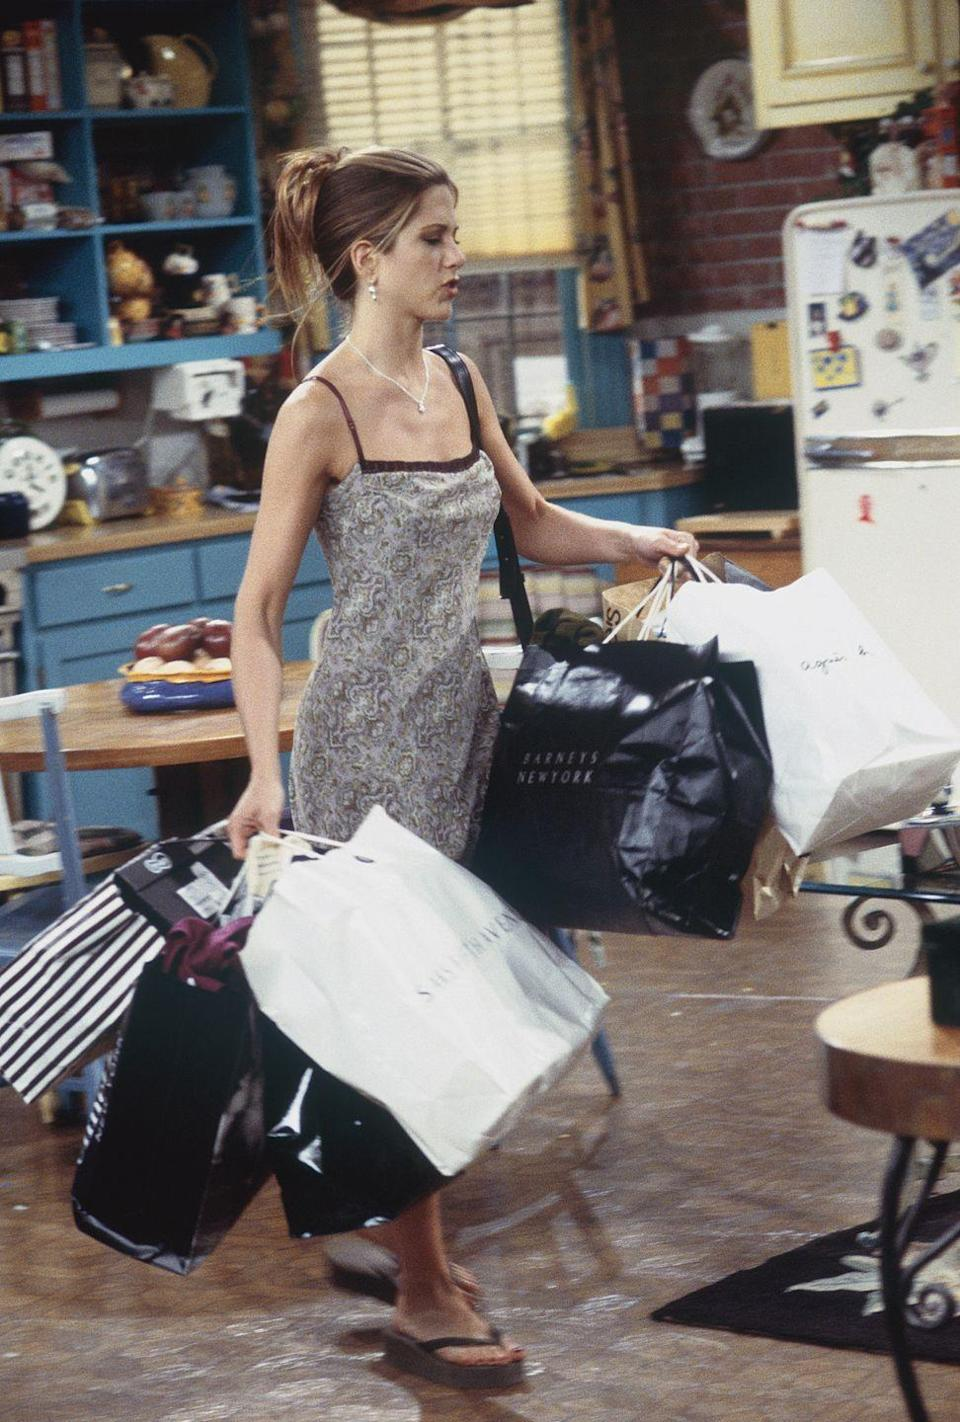 """<p>Was this taken in 2000 or in 2020? It's hard to tell, because Rachel's entire look – from her slip dress to her flip flops – is trending hard right now. </p><p><strong>What you'll need:</strong> <em>Wild Night Slip Dress, $104.90, Good American</em></p><p><a class=""""link rapid-noclick-resp"""" href=""""https://go.redirectingat.com?id=74968X1596630&url=https%3A%2F%2Fwww.goodamerican.com%2Fproducts%2Fwild-night-slip-dress-jungle001%3F_pos%3D2%26_sid%3D29aabd5f1%26_ss%3Dr&sref=https%3A%2F%2Fwww.redbookmag.com%2Ffashion%2Fg34220685%2Frachel-green-outfits-friends%2F"""" rel=""""nofollow noopener"""" target=""""_blank"""" data-ylk=""""slk:SHOP NOW"""">SHOP NOW</a></p>"""